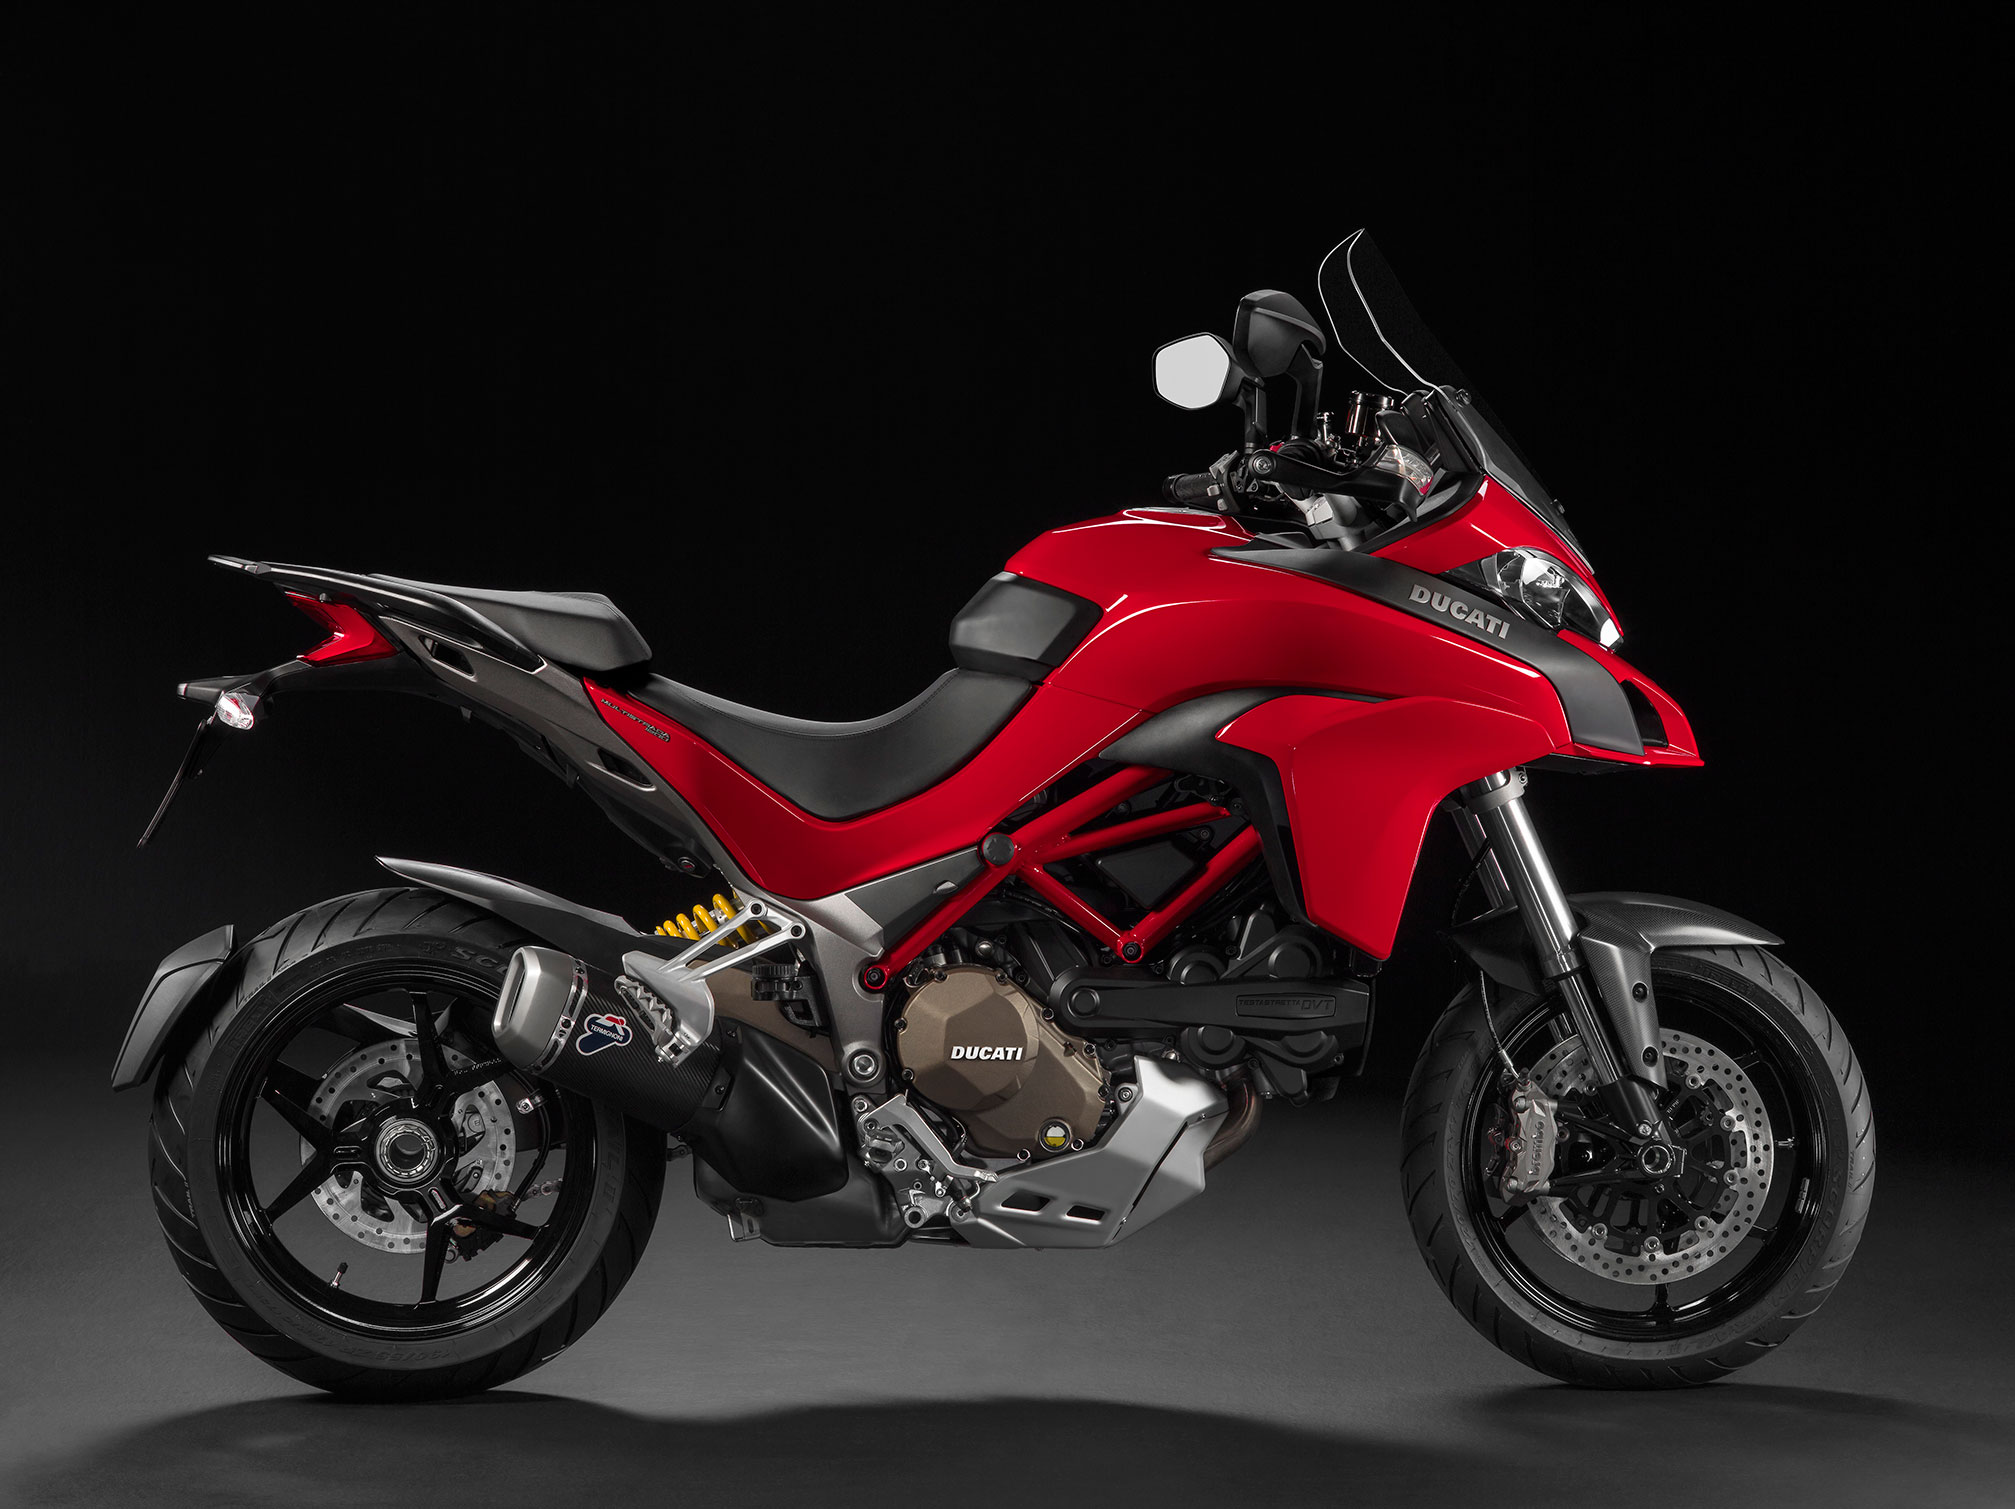 Ducati Multistrada 1200 2015 wallpapers #13192